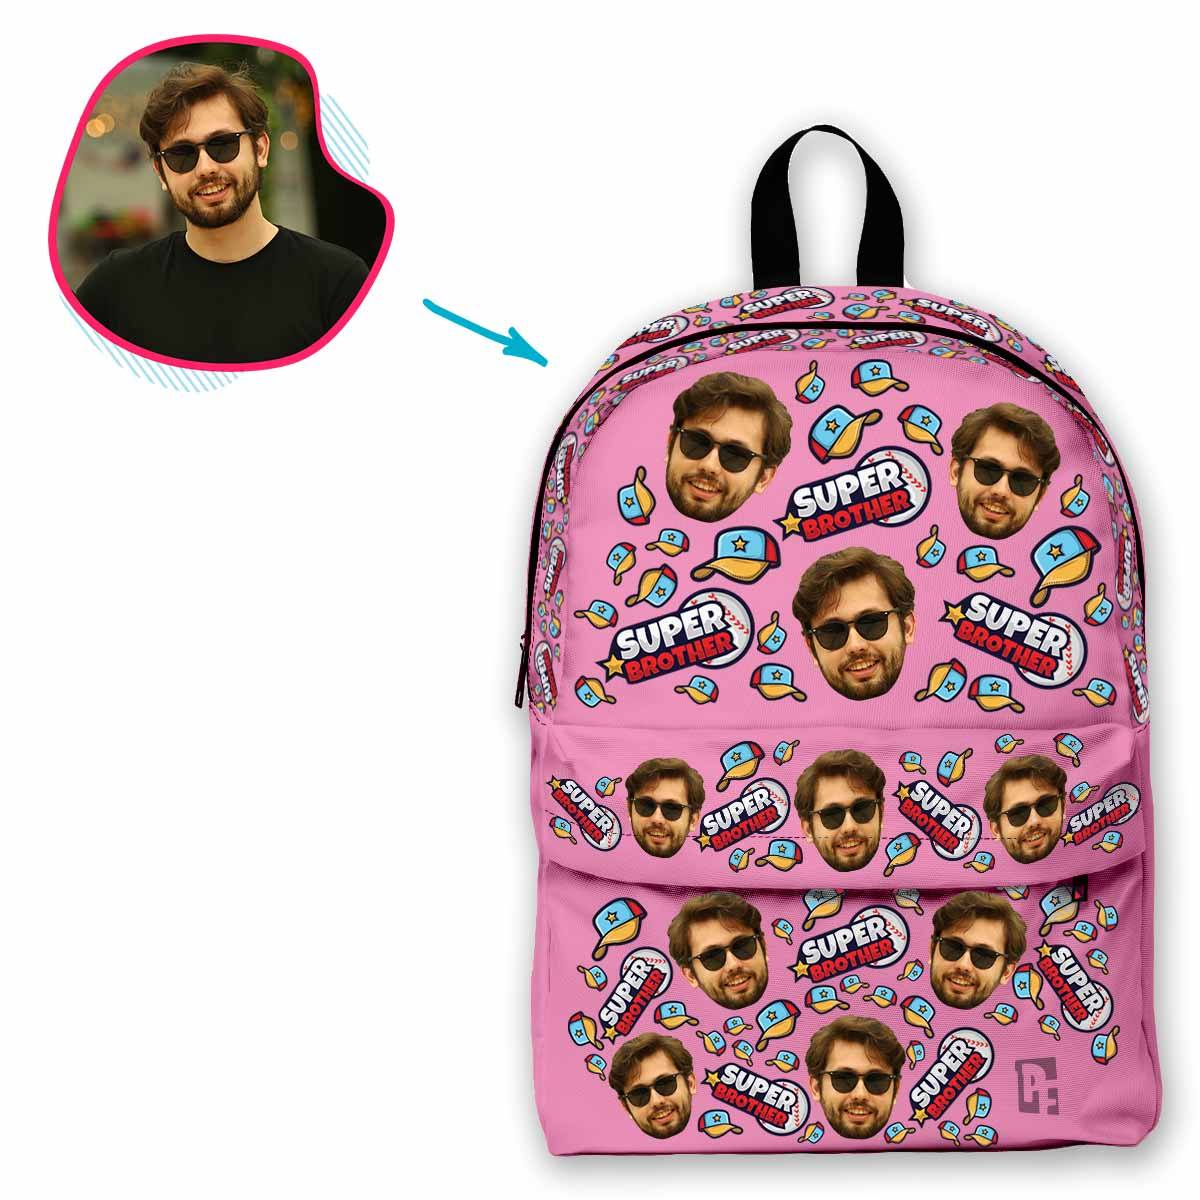 pink Super Brother classic backpack personalized with photo of face printed on it